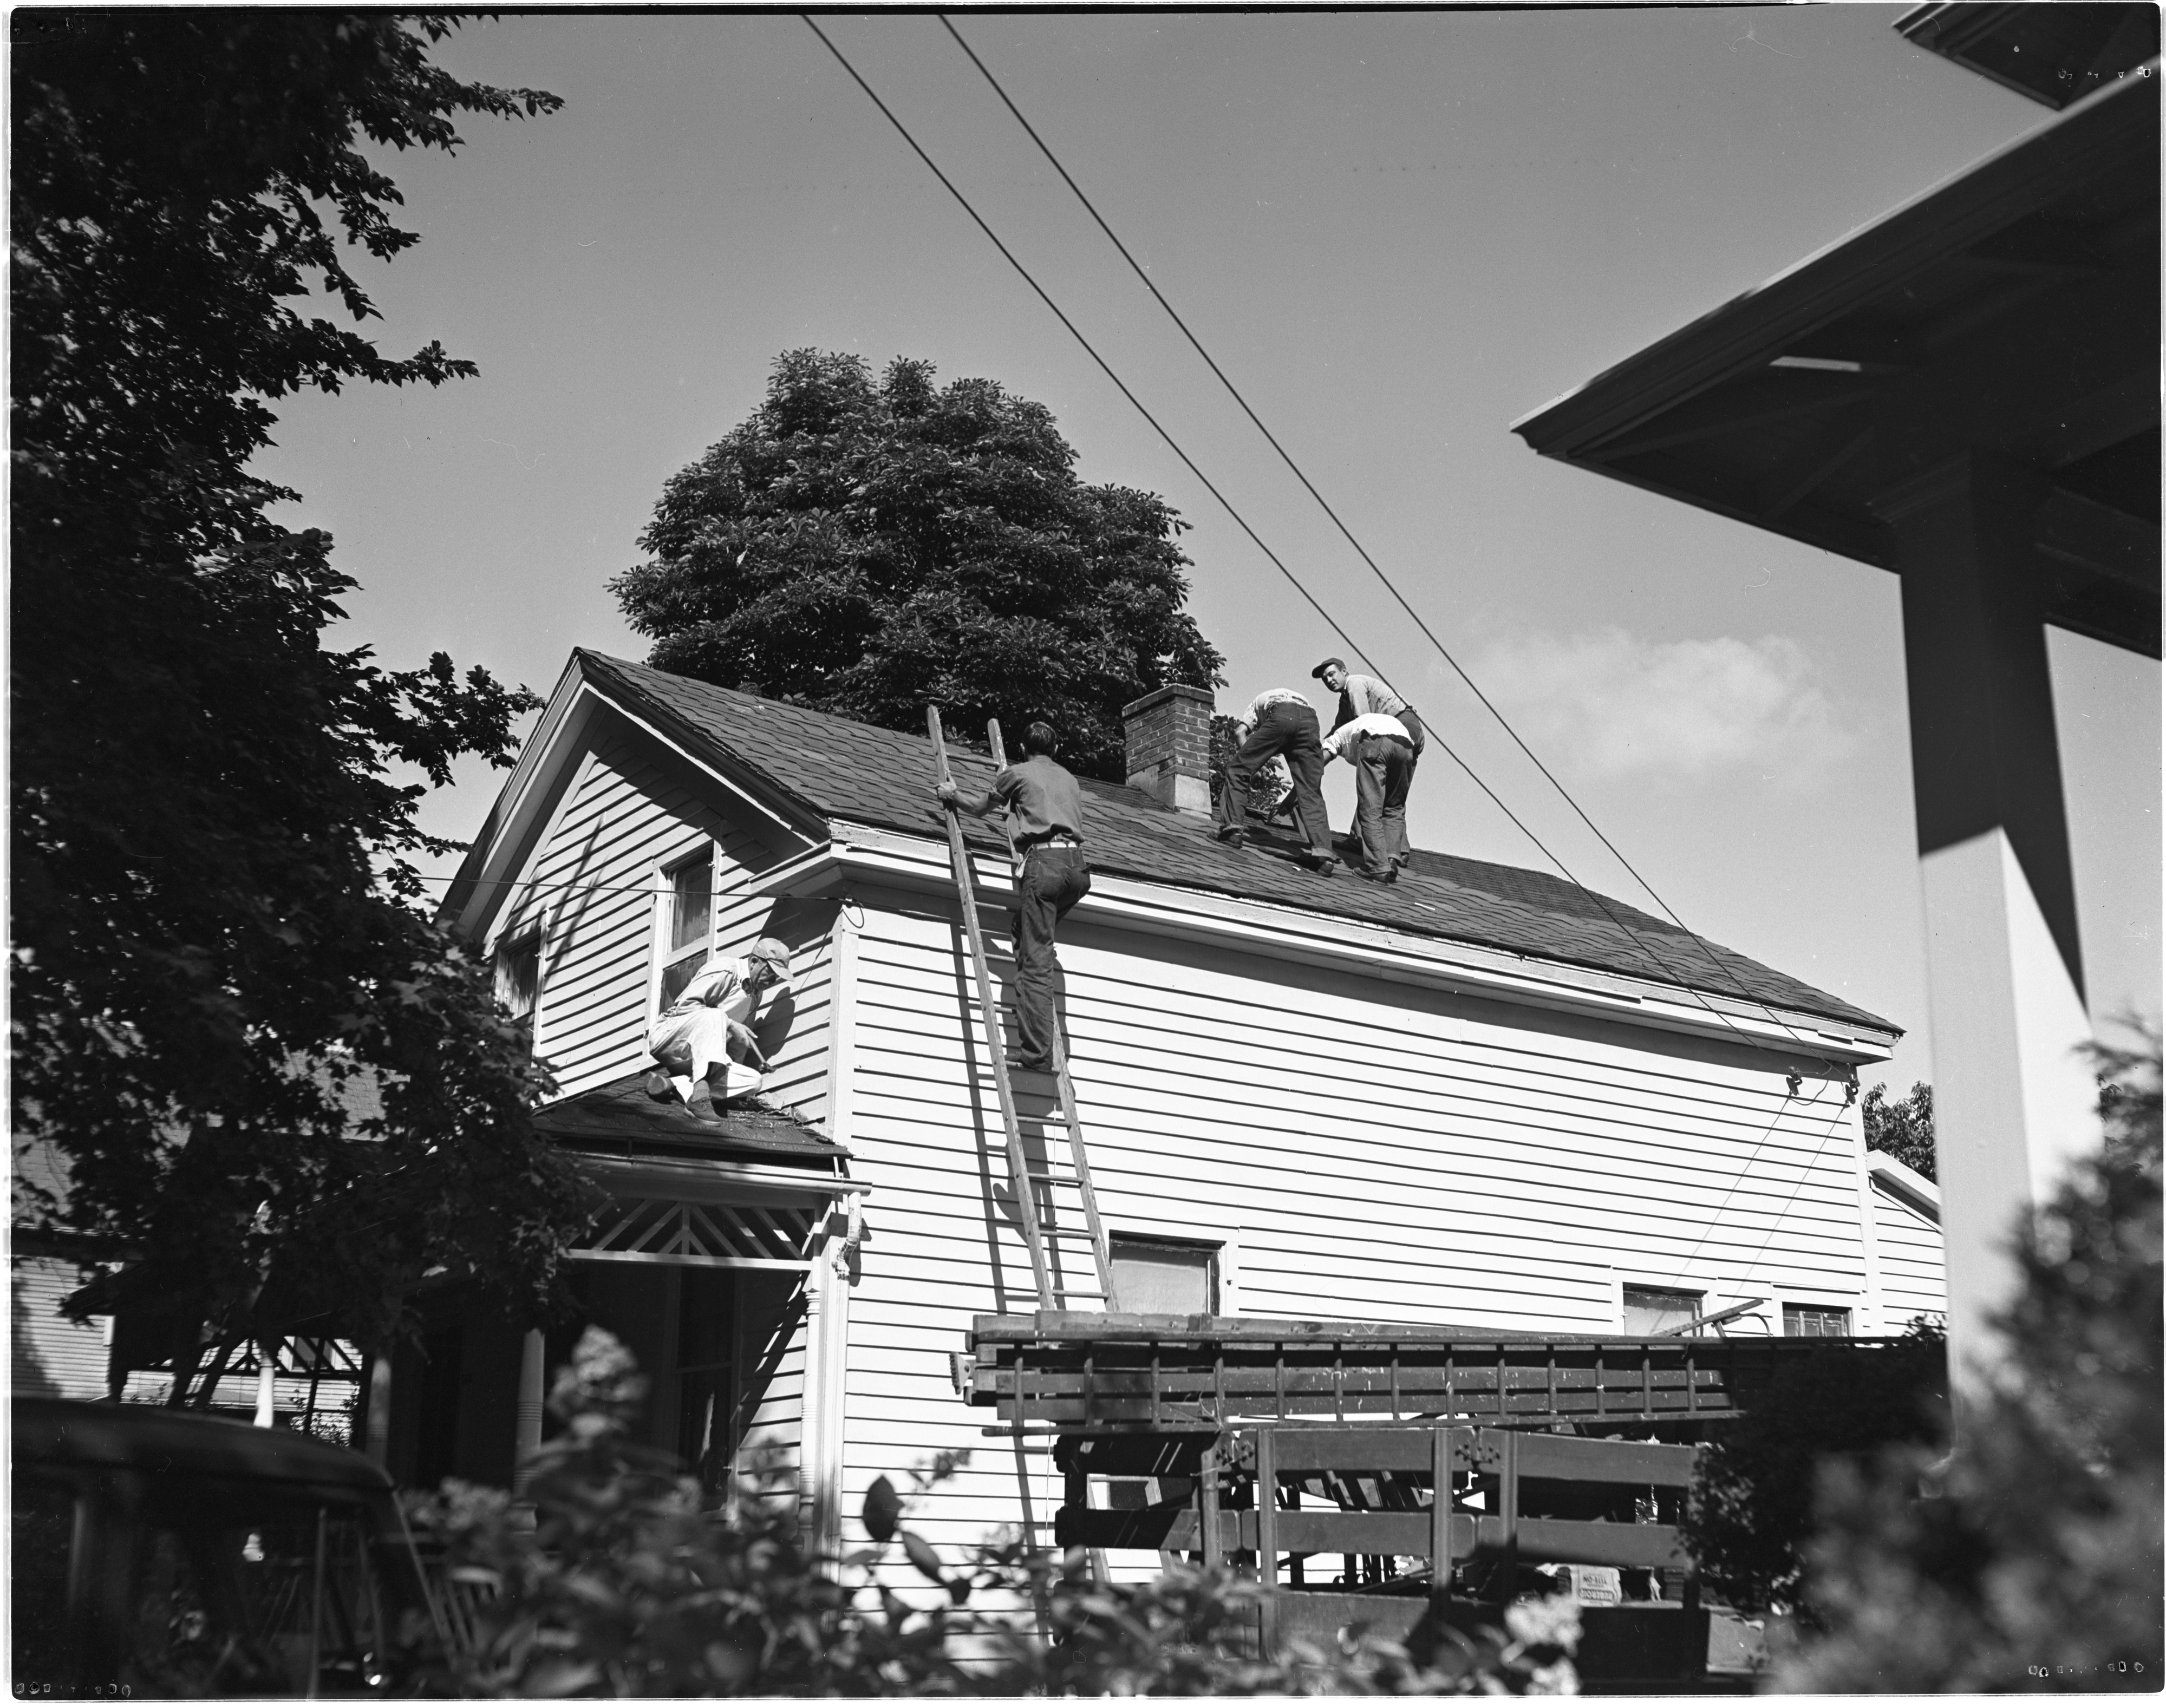 Huron Valley Roofing Company Works On Home For Hungarian Refugees, August 1950 image